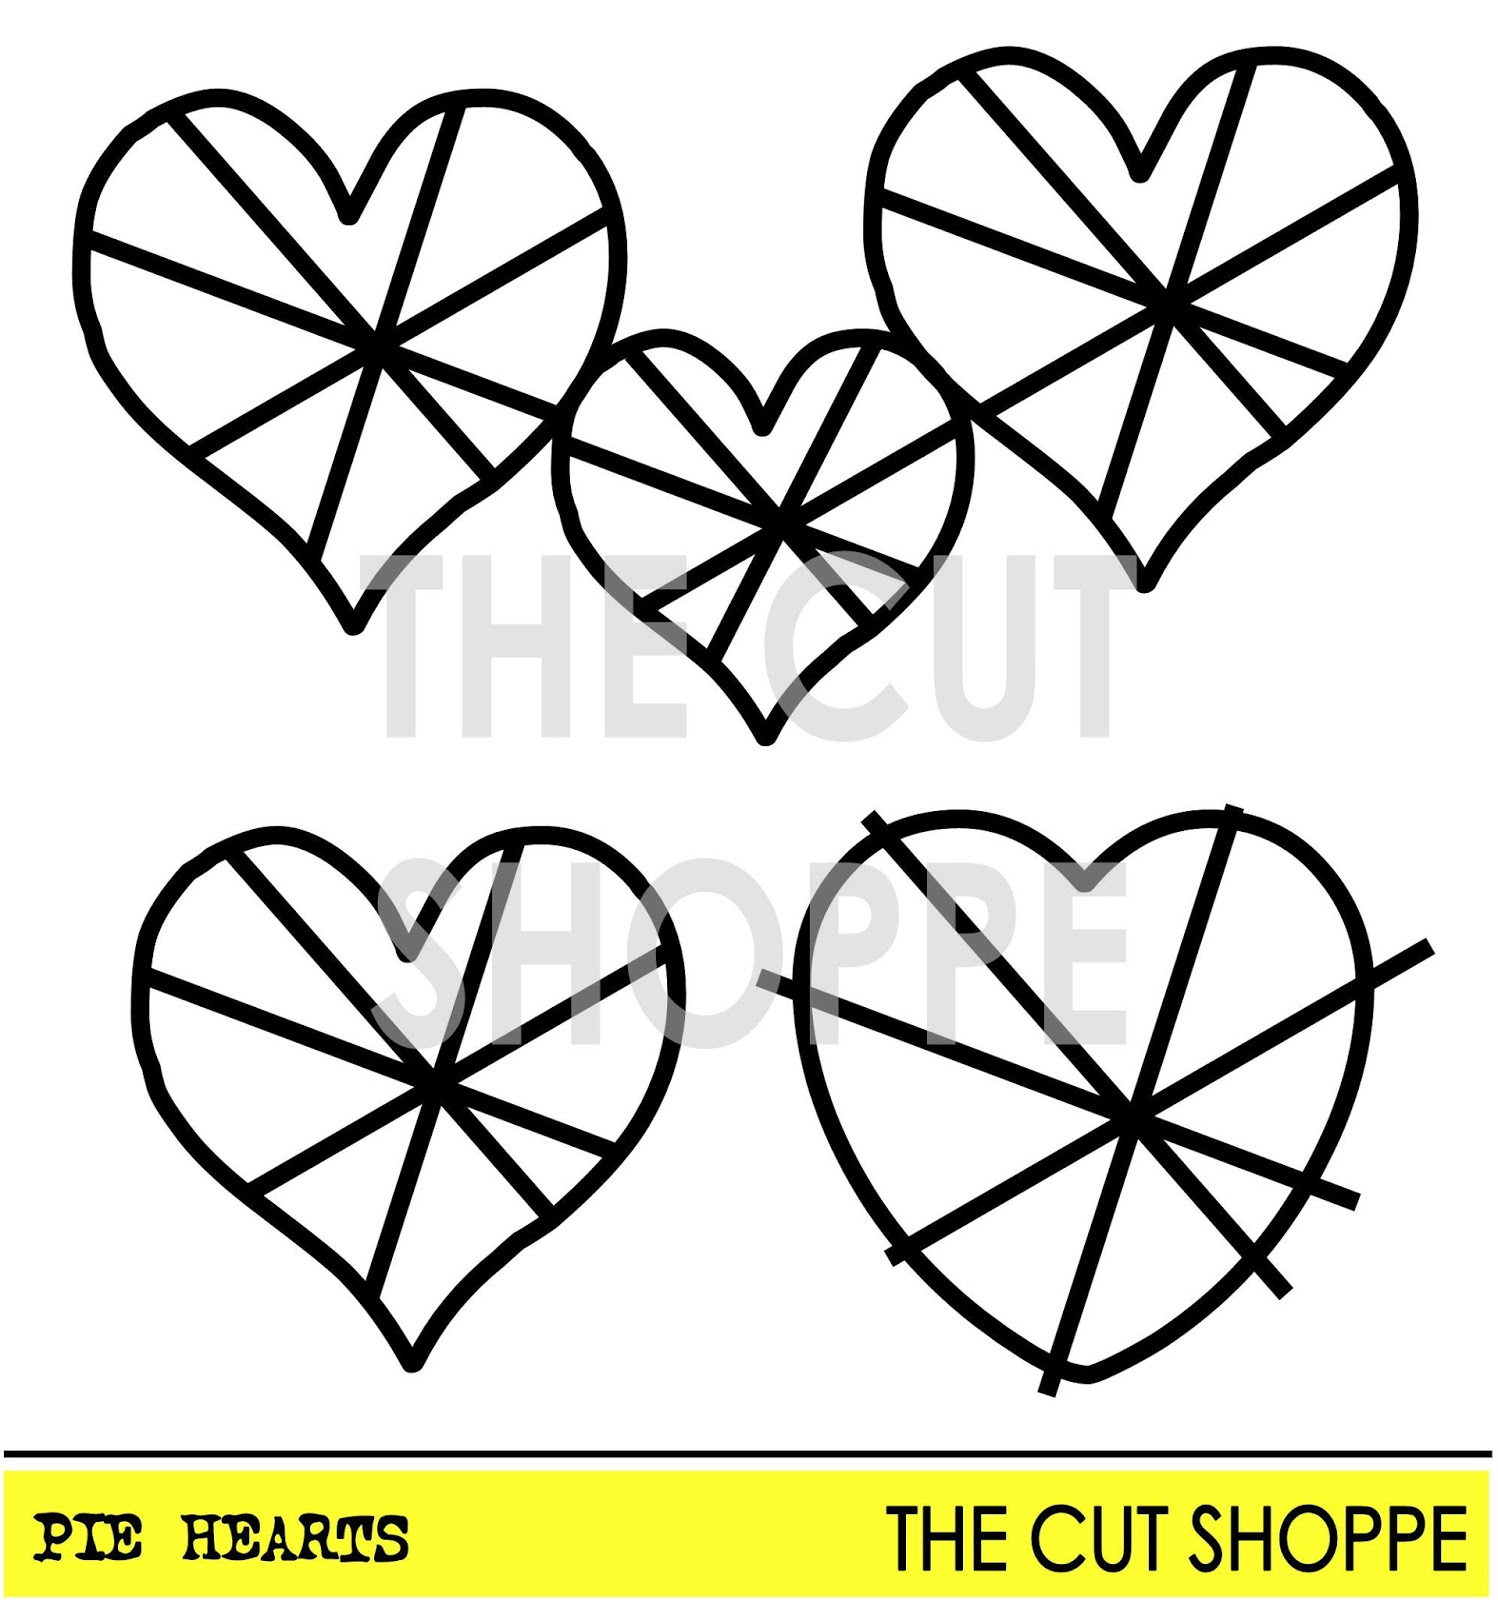 https://www.etsy.com/listing/193530389/the-pie-hearts-cut-file-consists-of?ref=shop_home_active_11